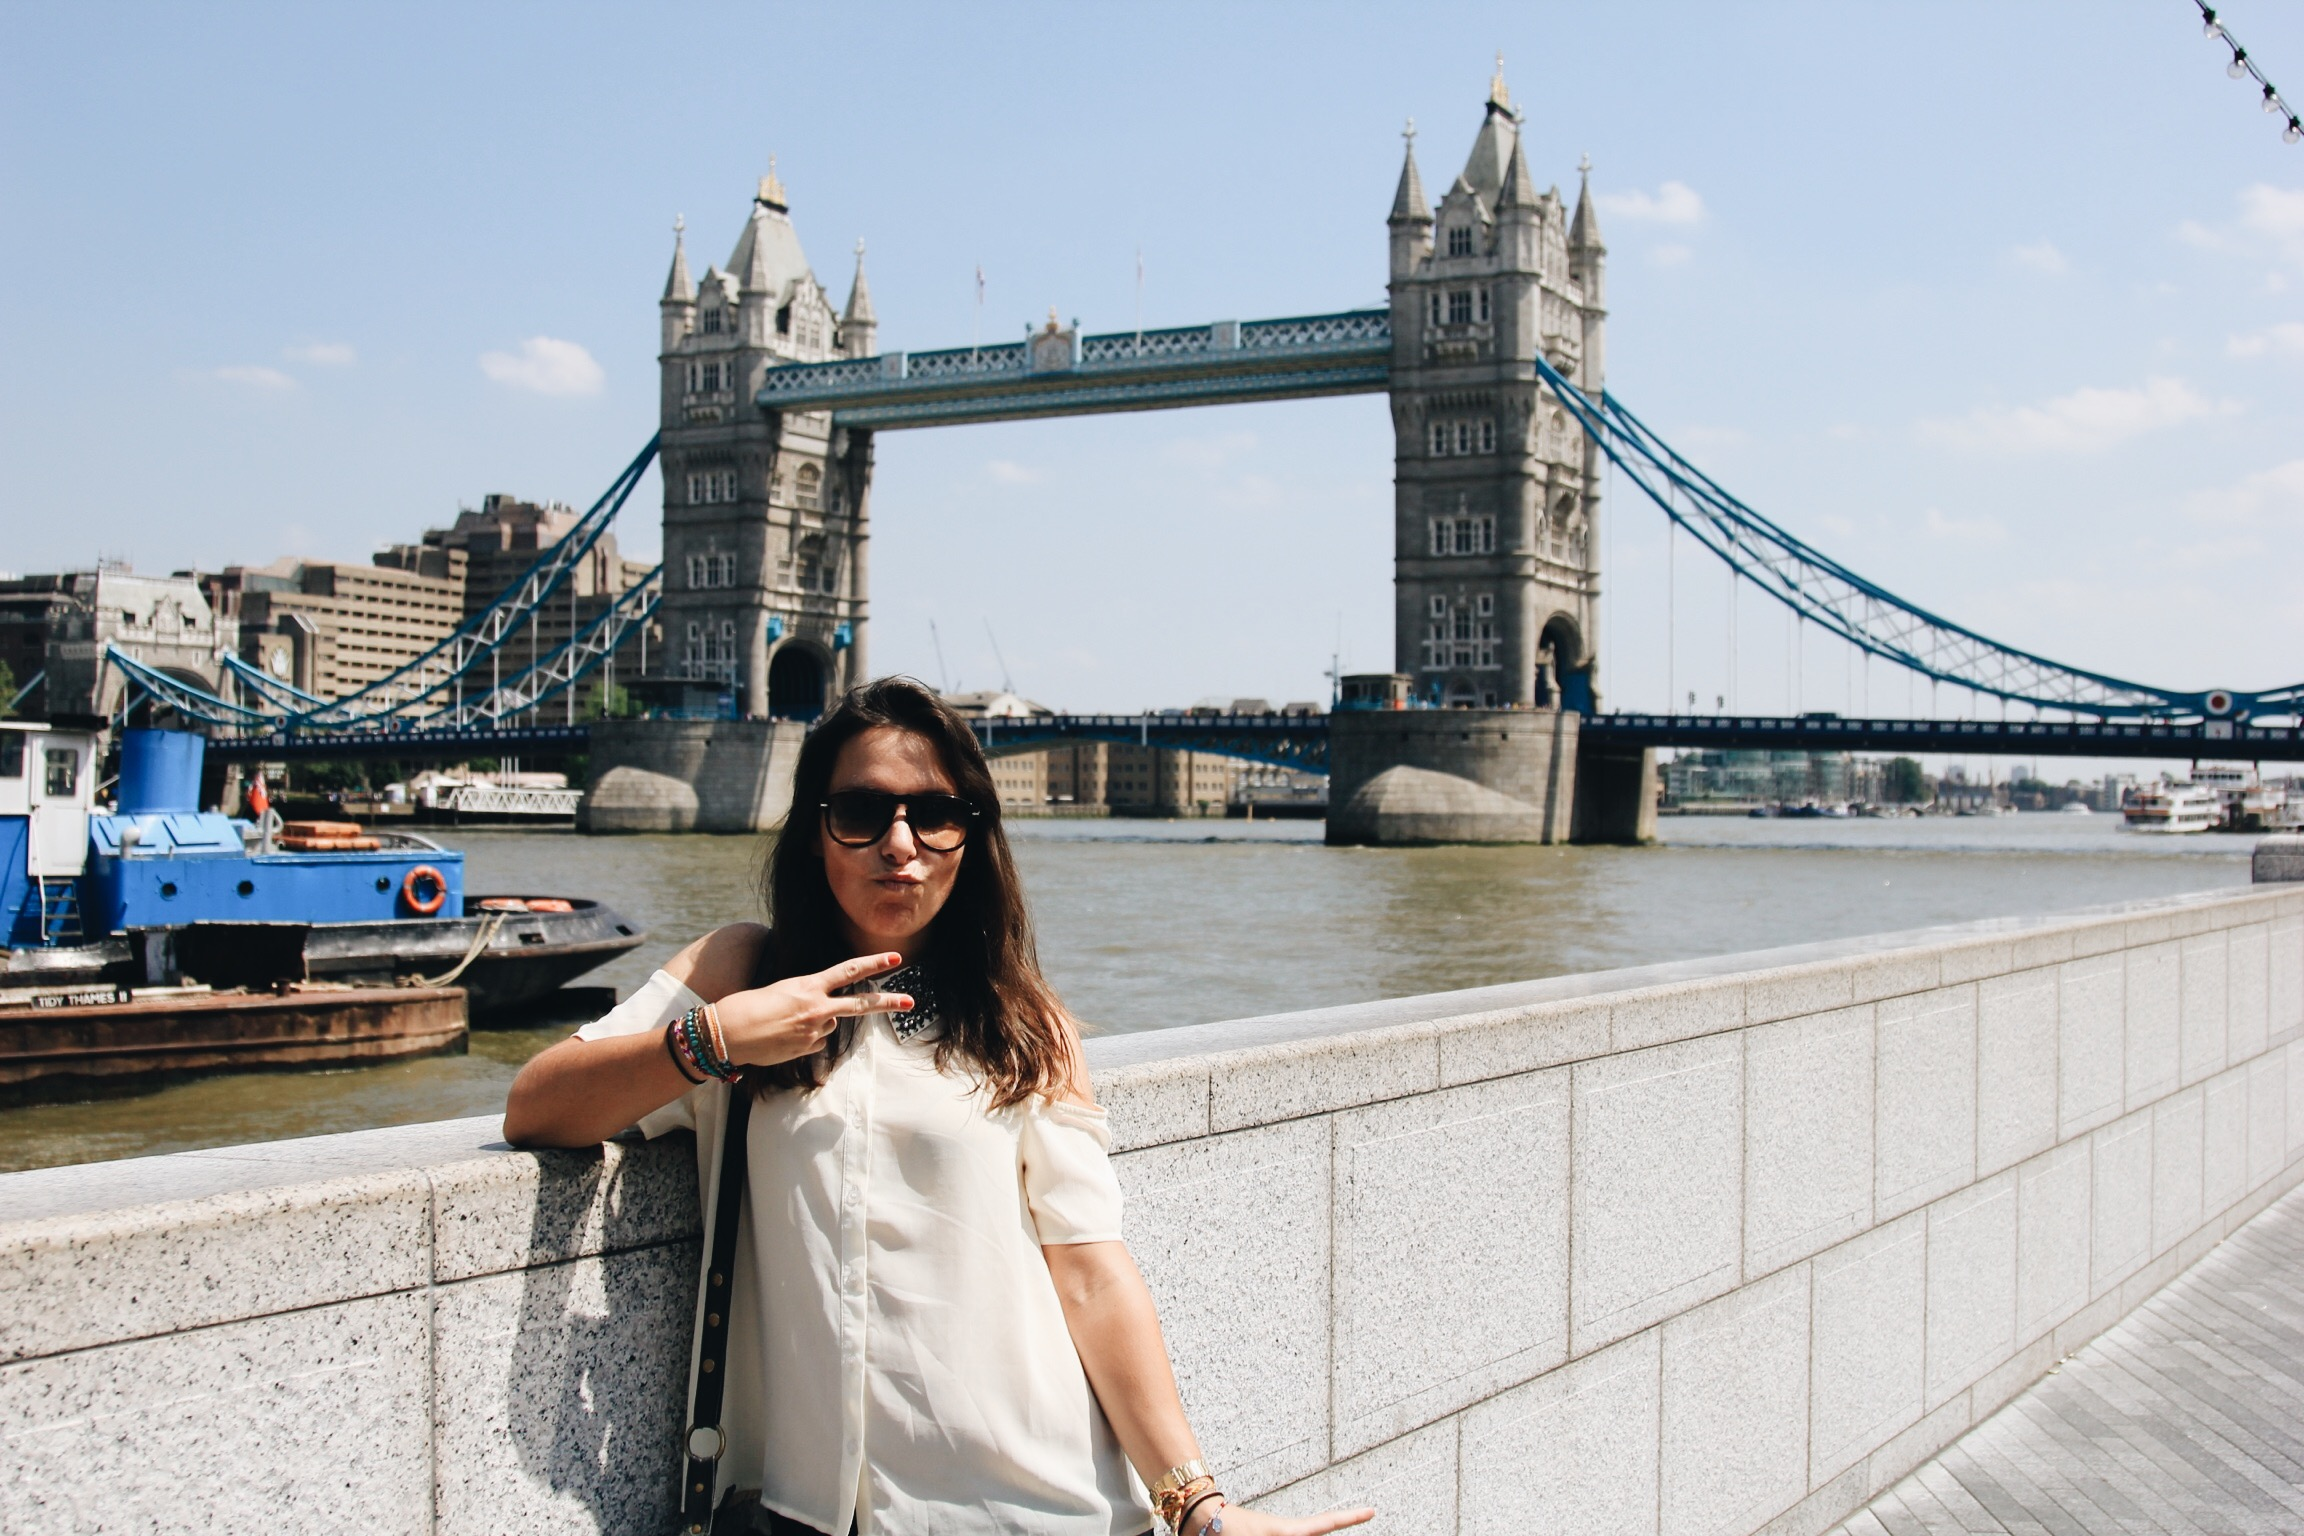 Alex-Tower-bridge-londres.jpg